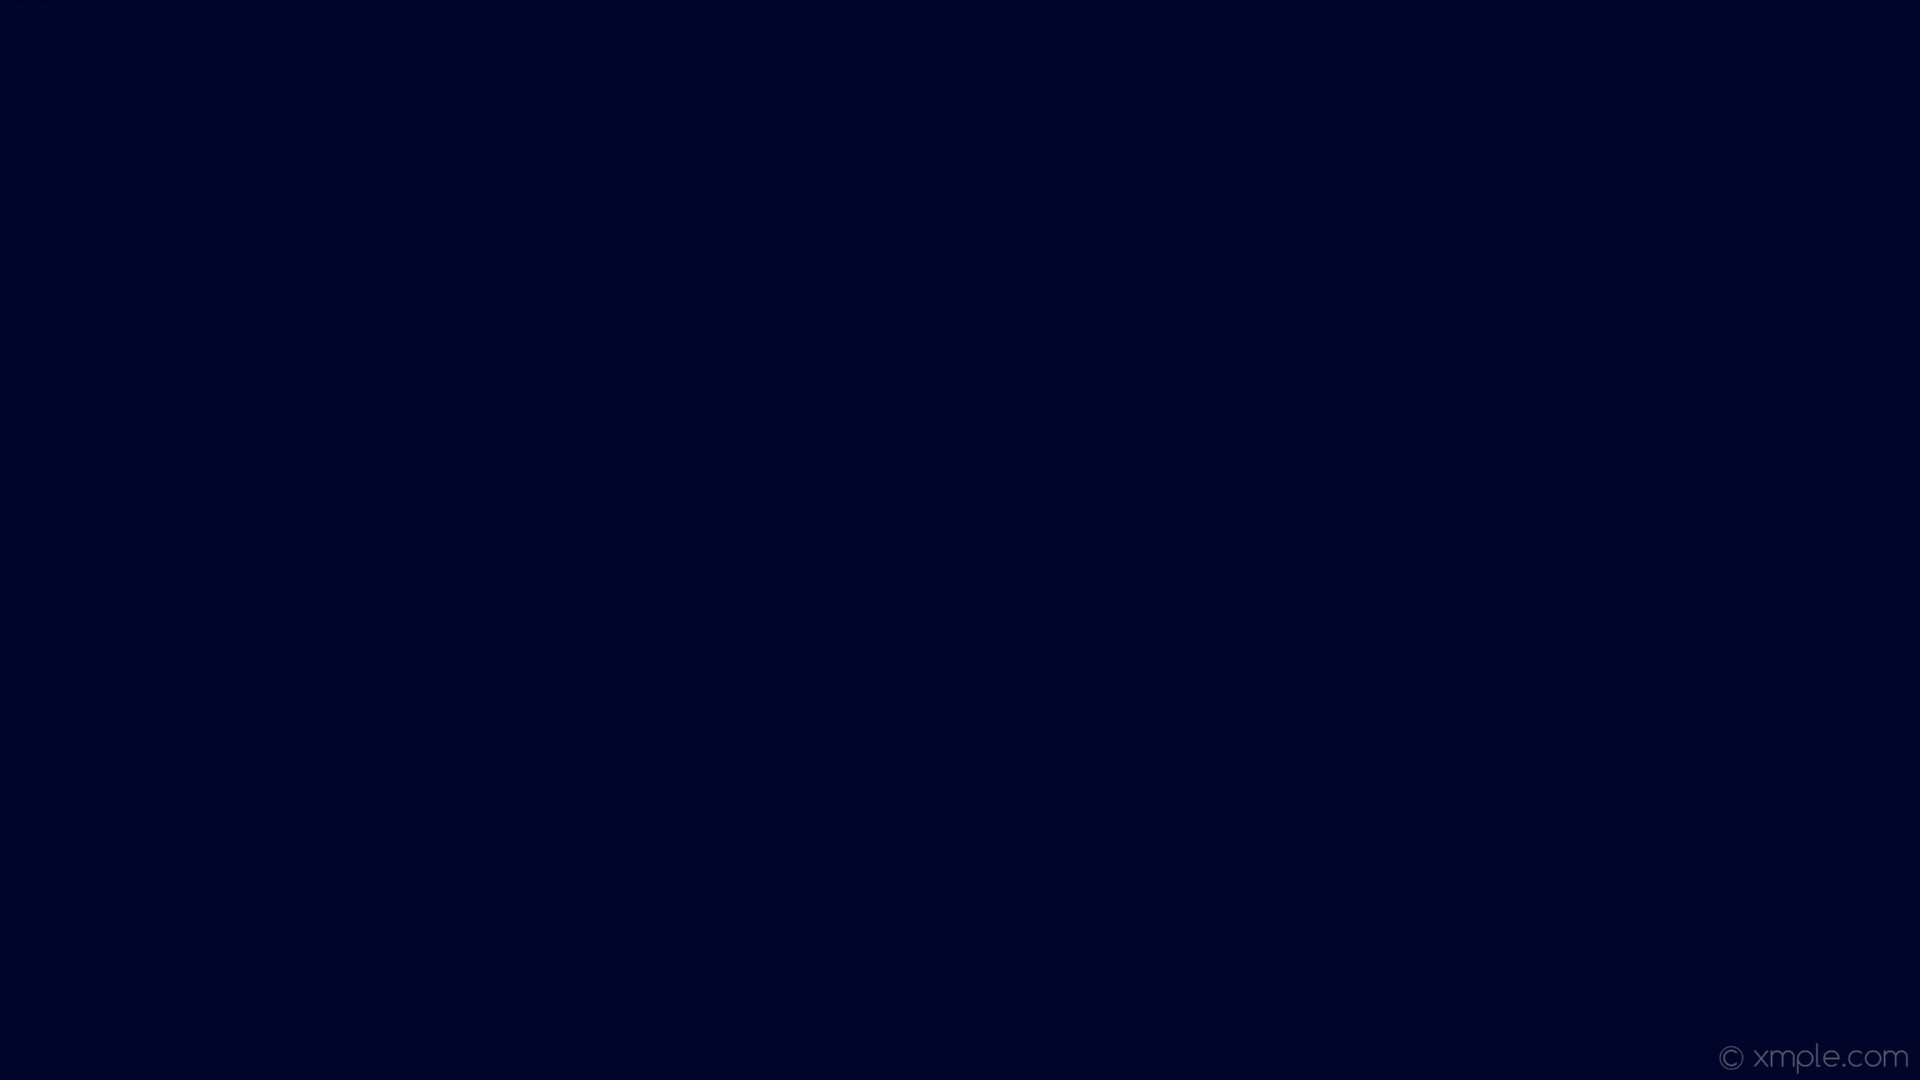 Plain Blue Screen Wallpaper 1920x1080